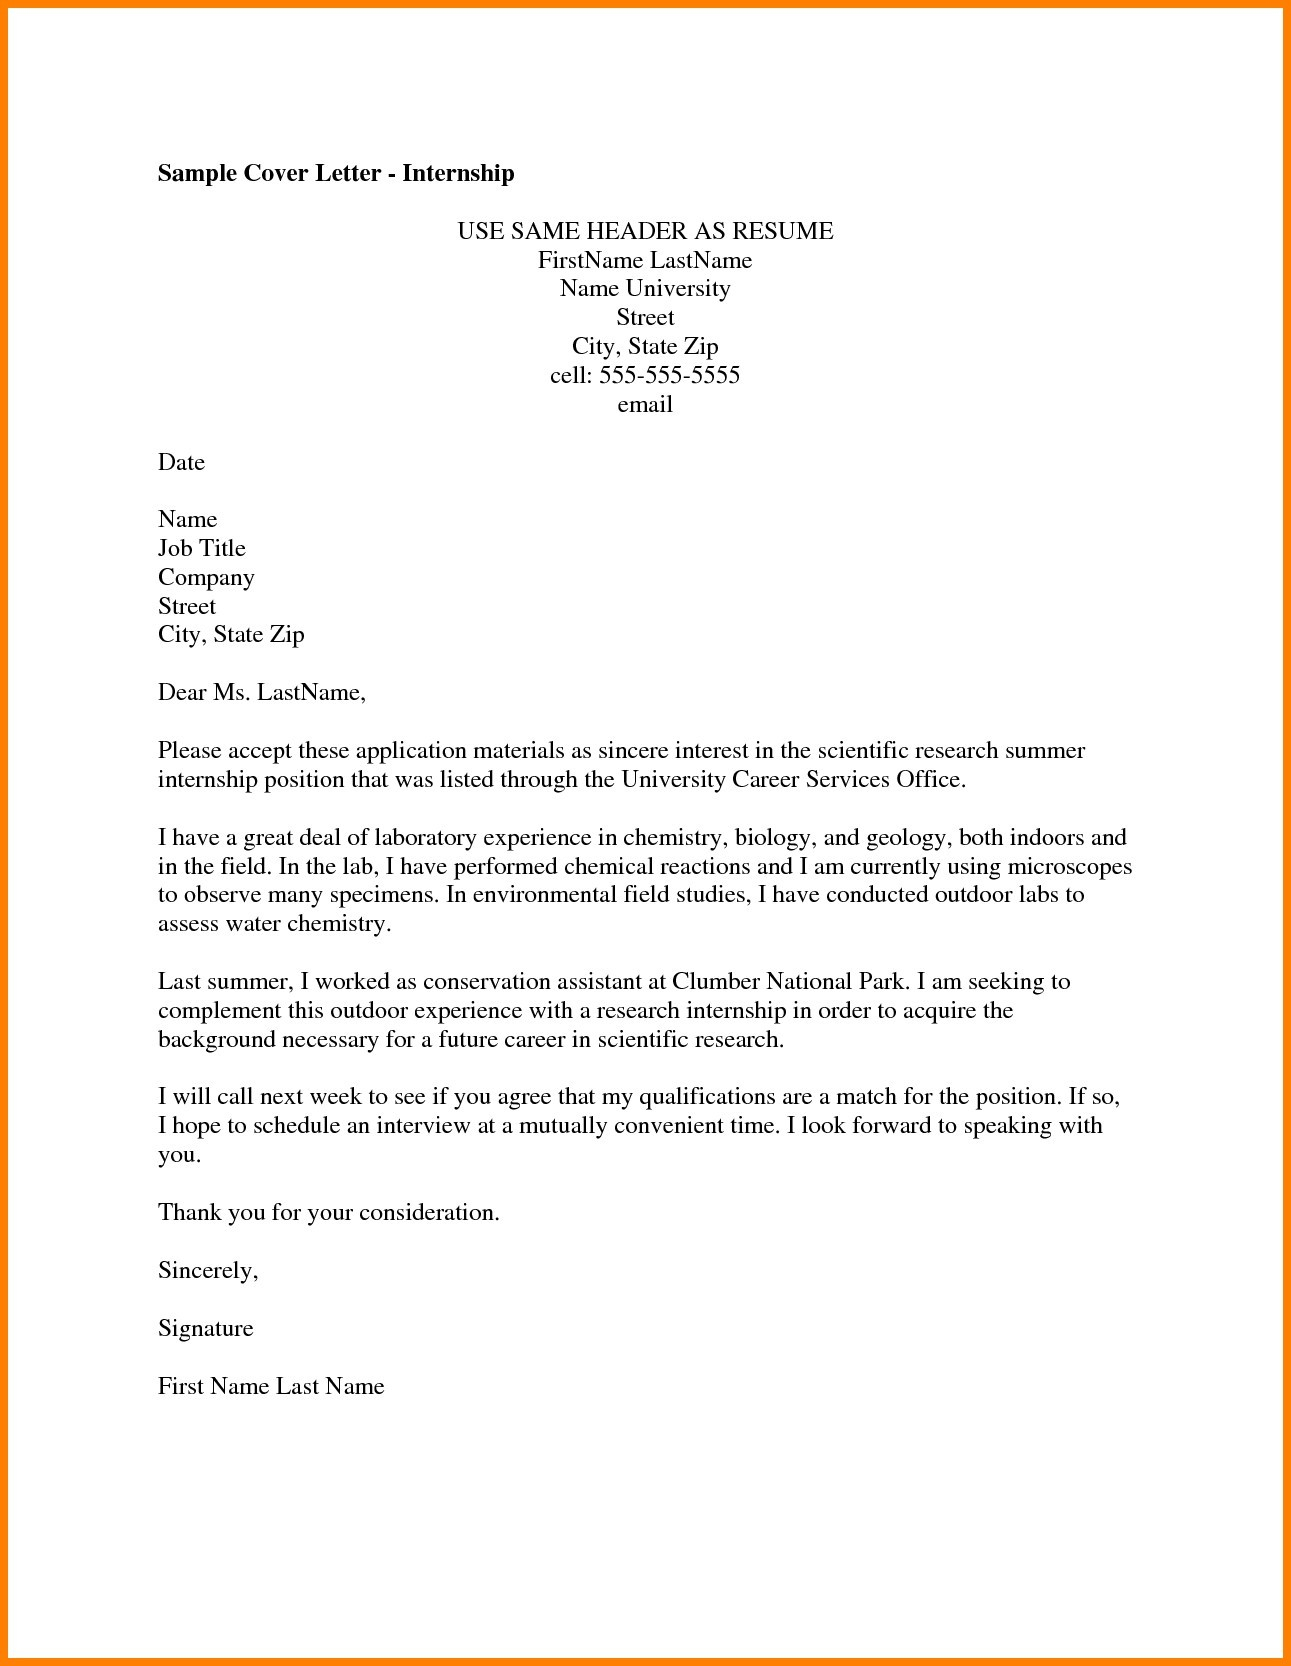 Theatre Cover Letter Template - Cover Letter for Line Job Application Best Universal Cover Letter